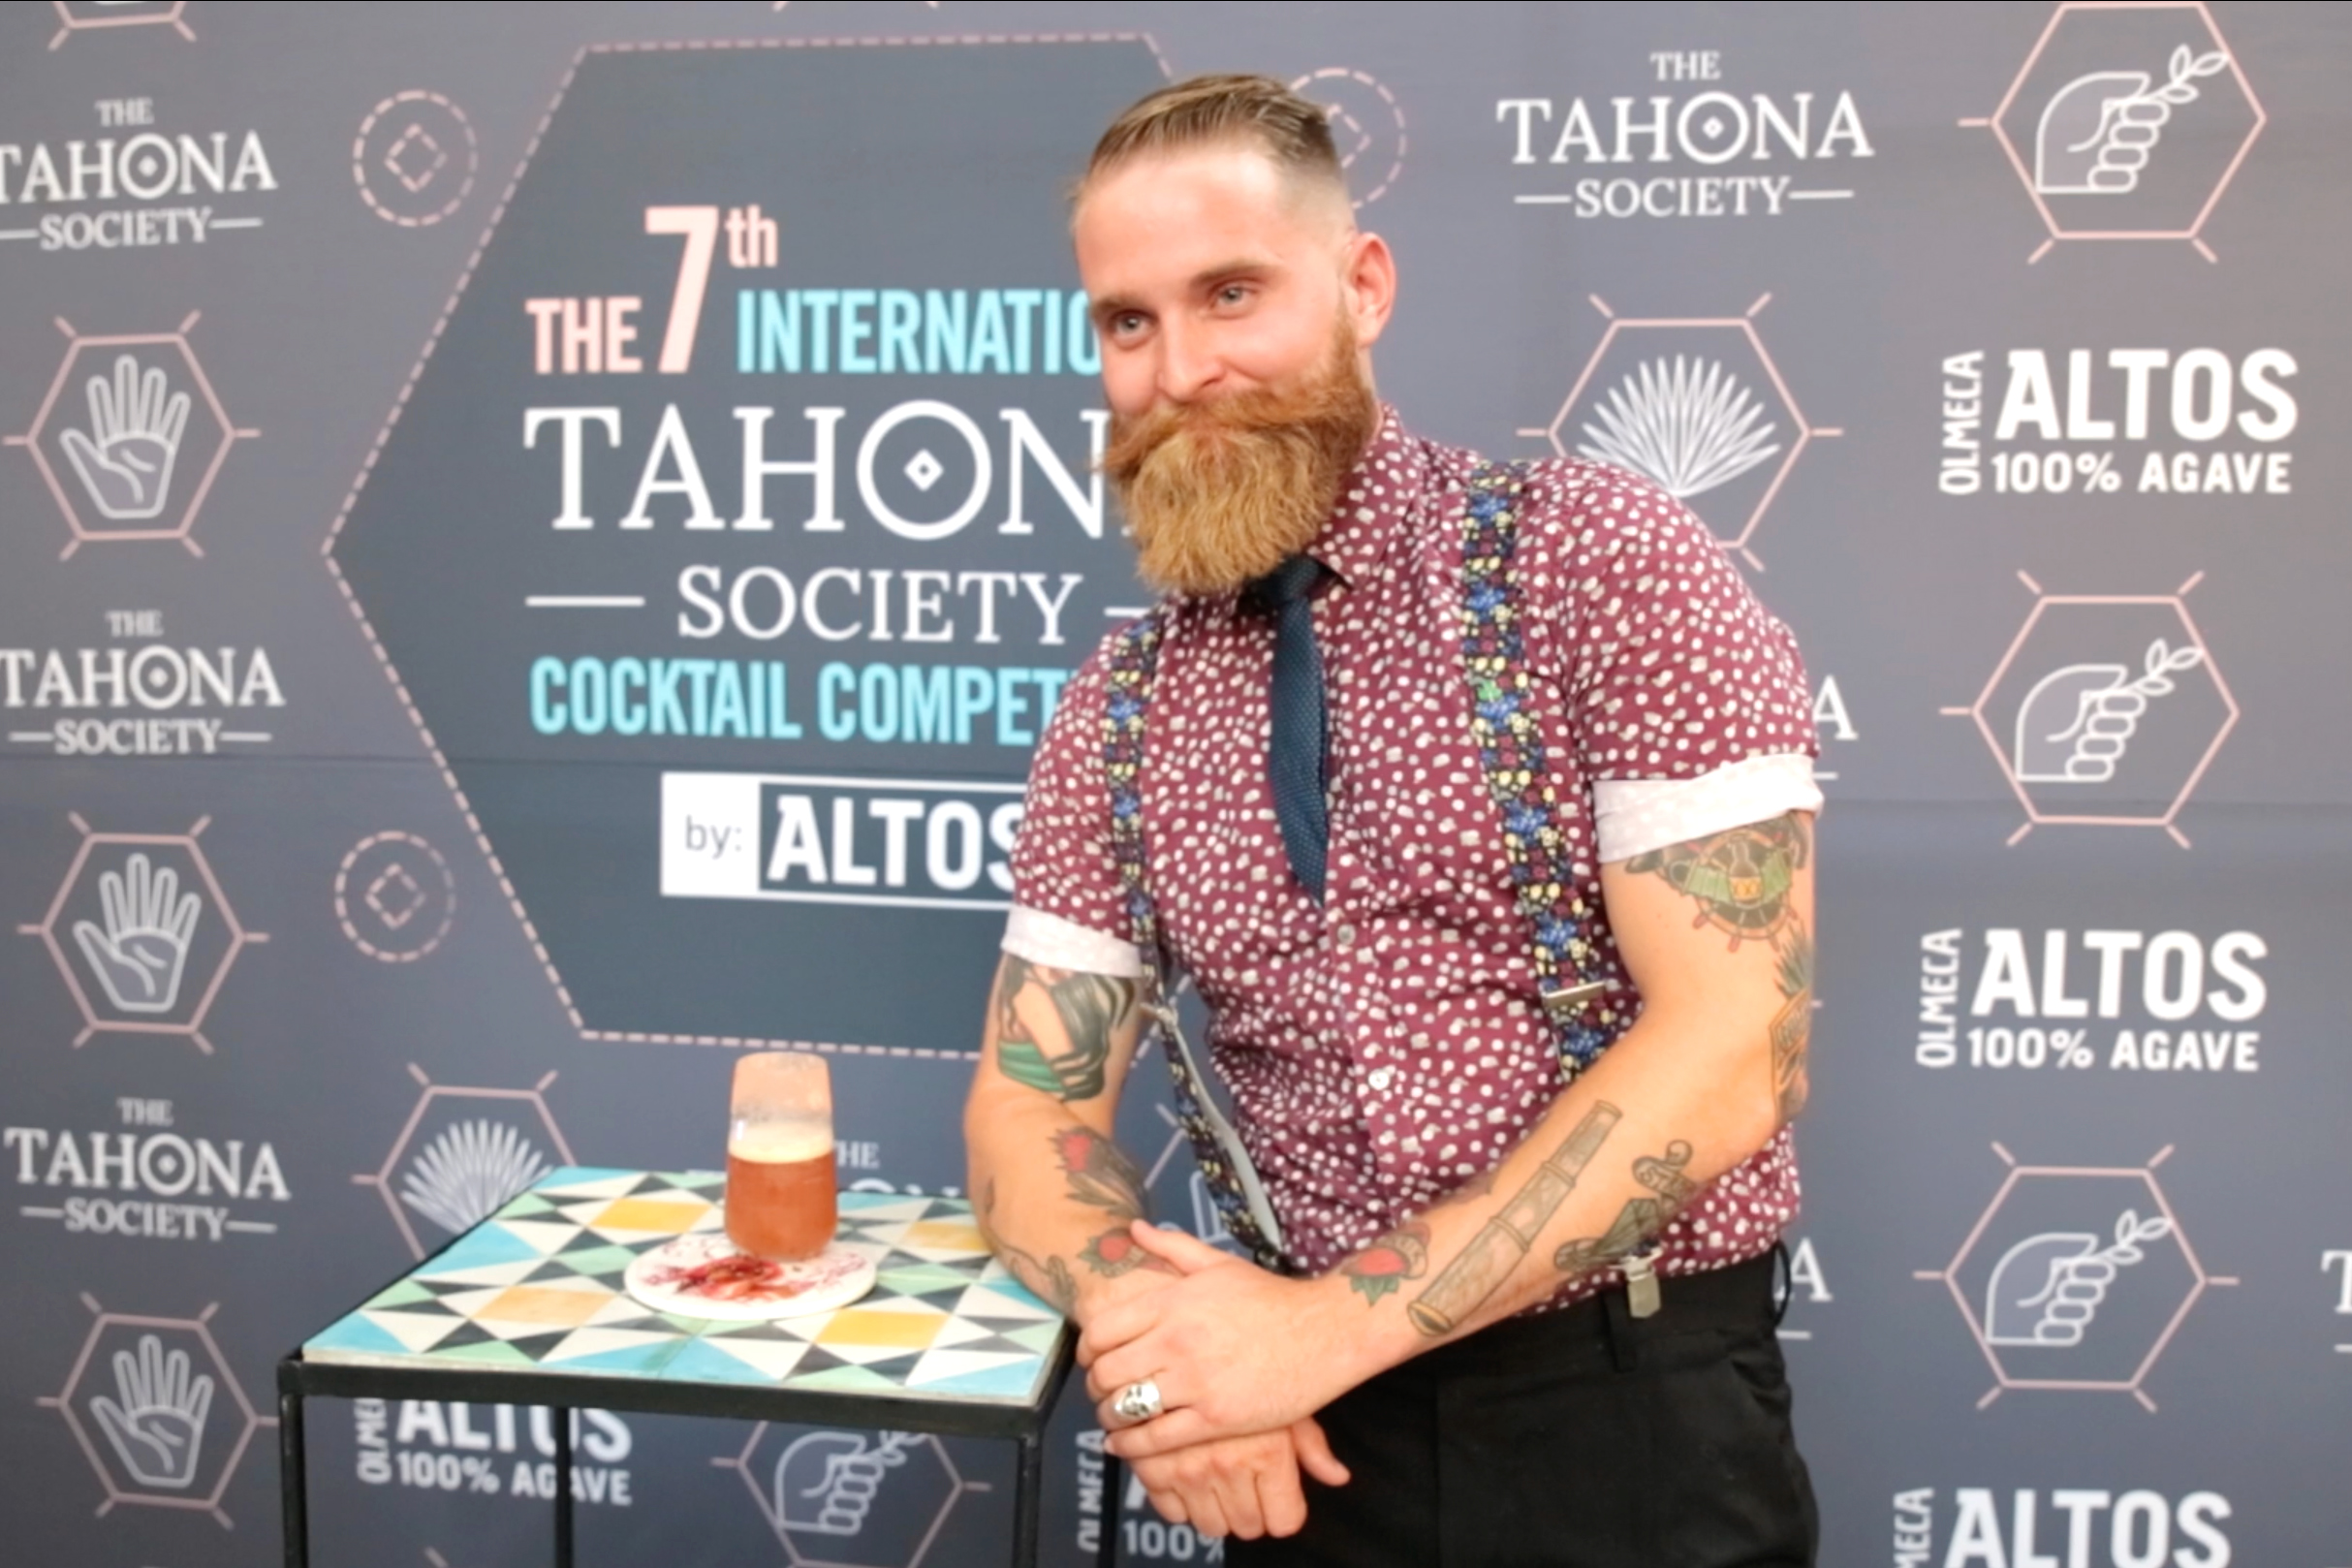 Meet The New Wave Of Bartenders Championing Sustainability photo